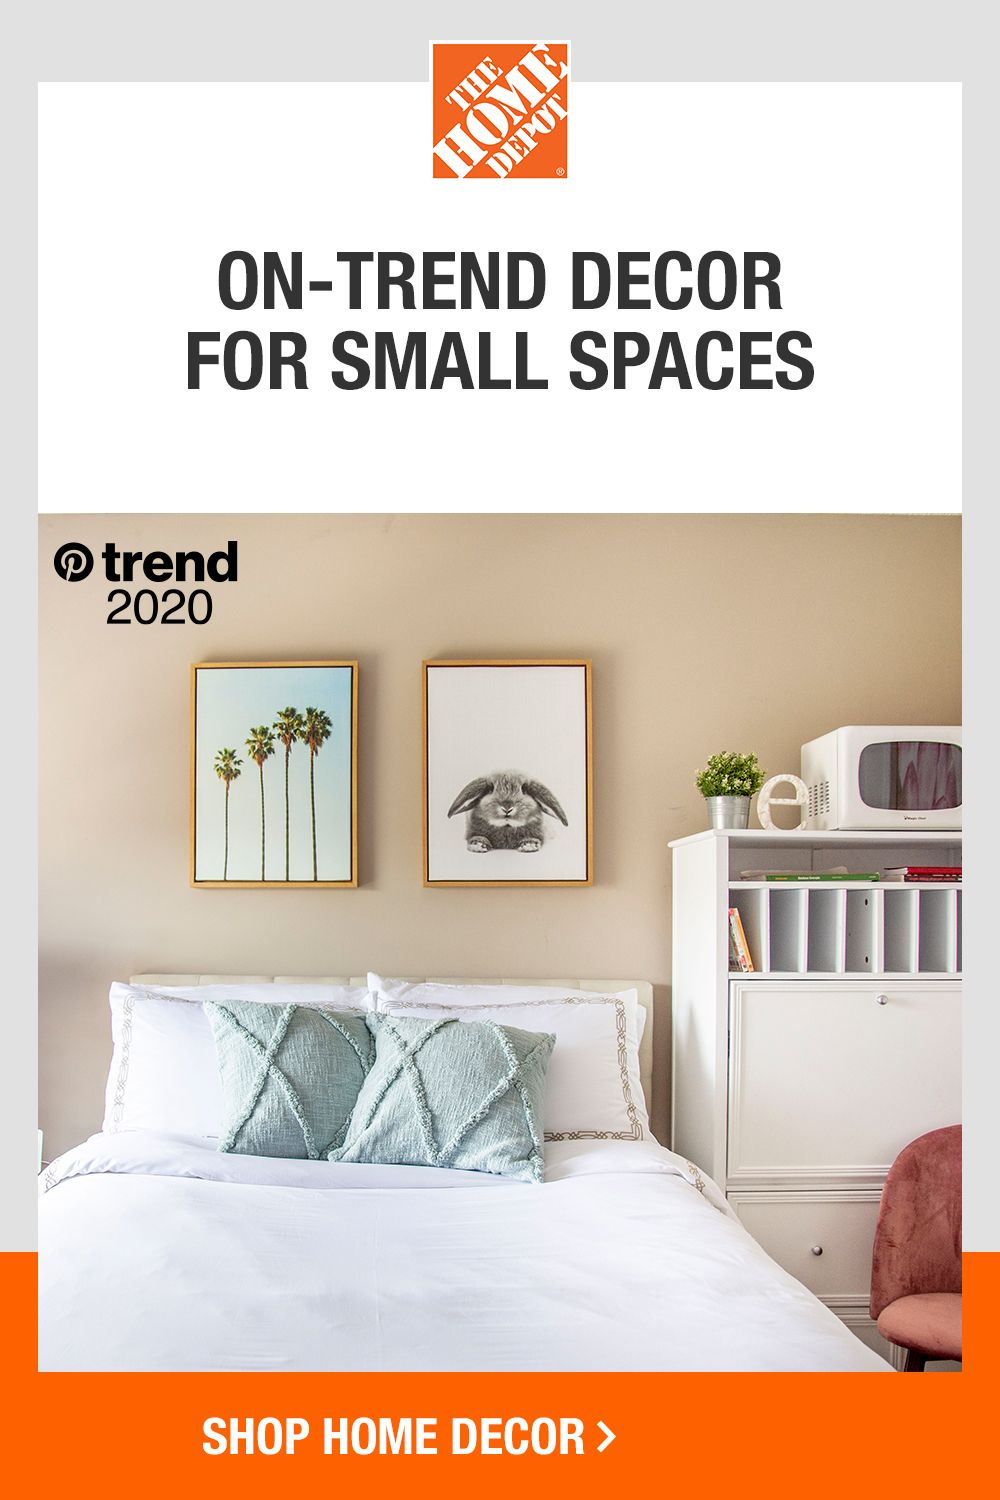 Pin by The Home Depot on Crochet Stitches in 2020 | Dorm room wall decor,  Trending decor, Home decor